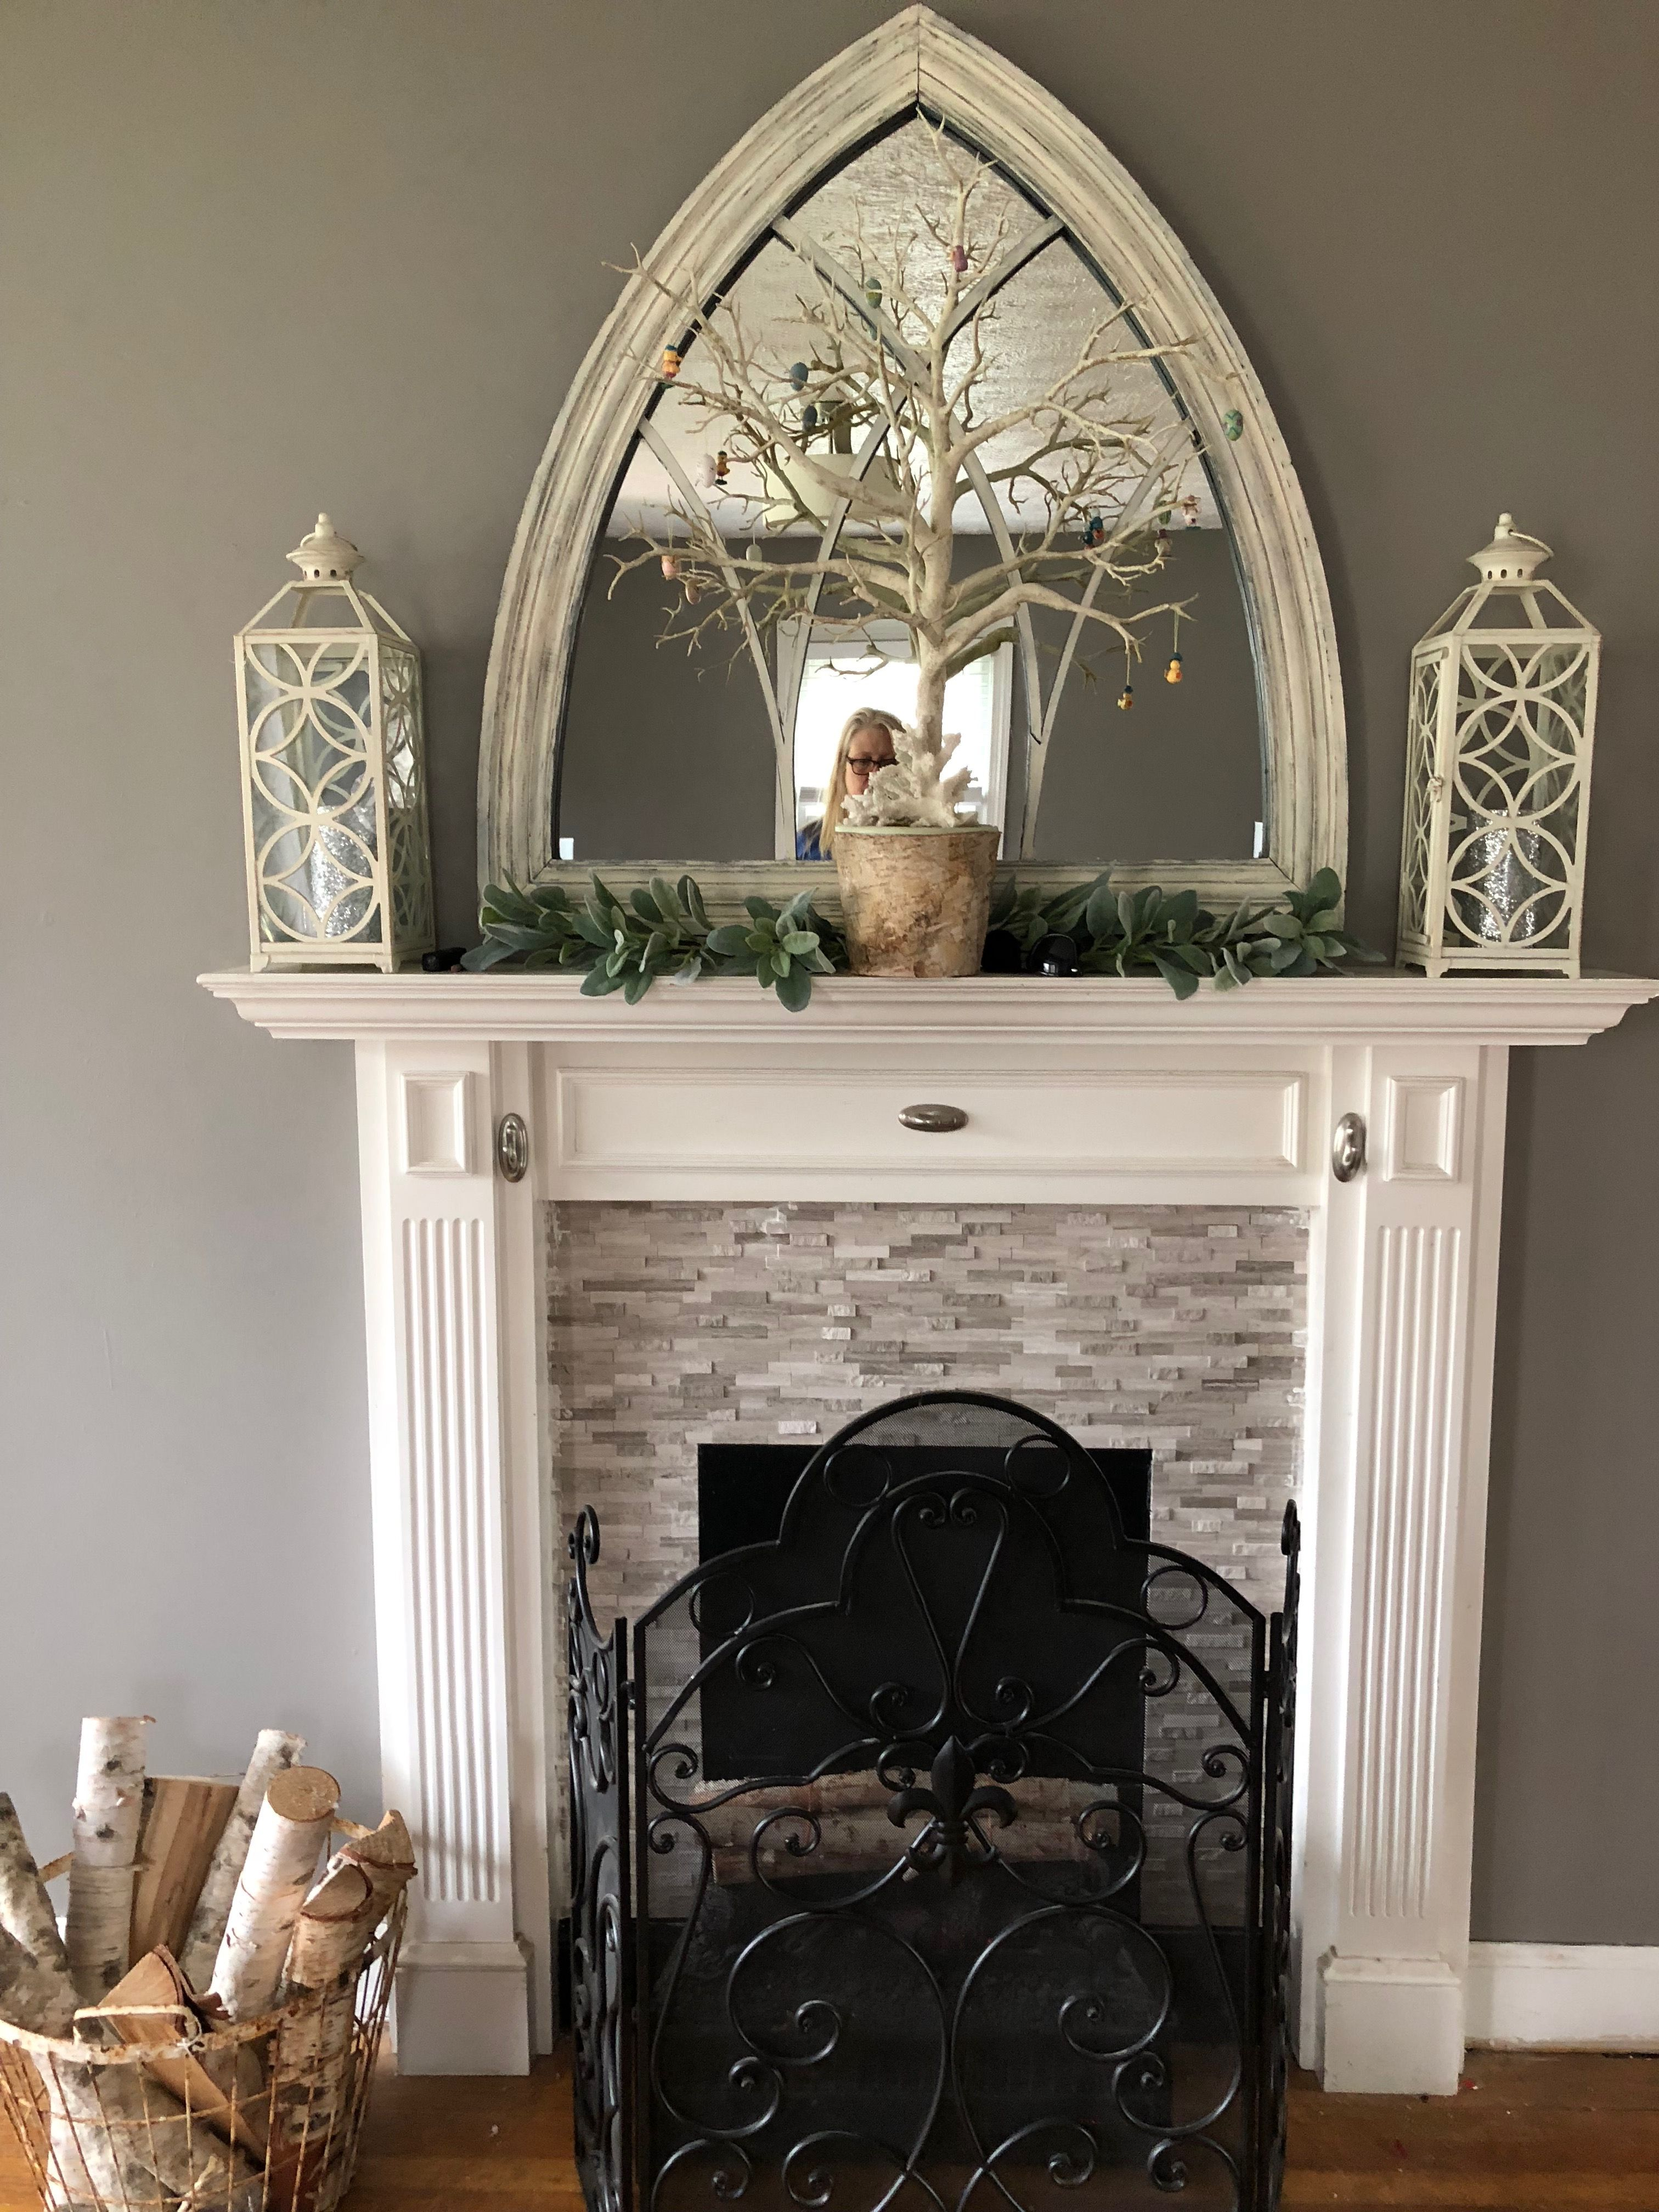 Medium Gray Walls With Destressed White Accents Taupe Gray Peel And Stick Stone Tile In The Faux Fireplace Tile Around Fireplace Fireplace Tile Faux Fireplace